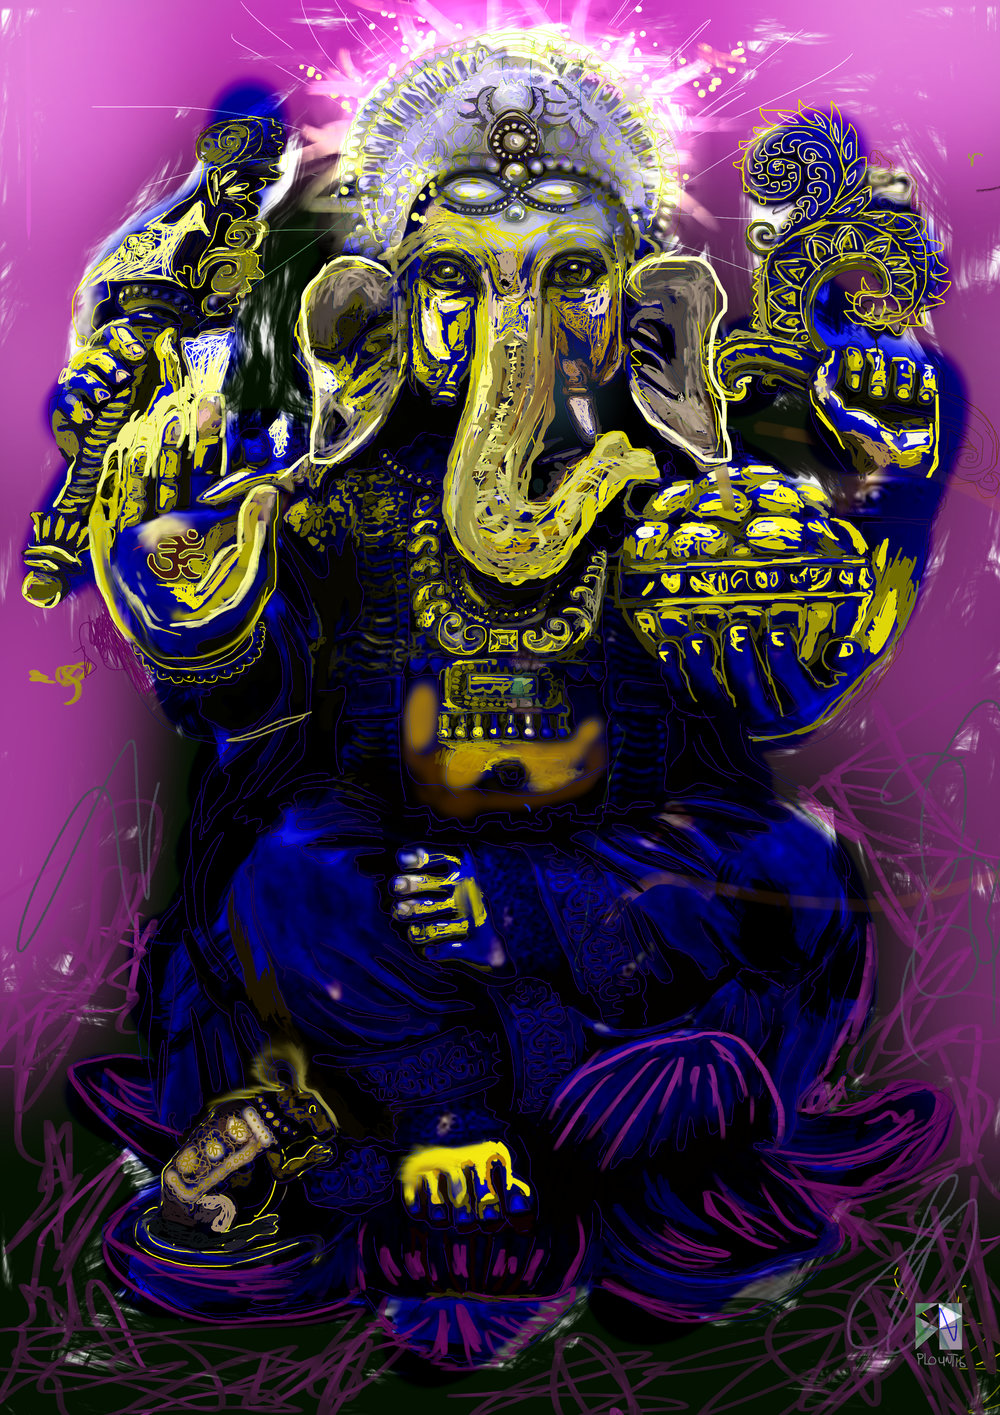 "Golden Ganesha   Electronics Painting, iPad, Procreate, Pencil 53,  Photoshop. © 2016 dimensions variable to 48"" x 60""  giclee limited edition prints available contact the artist"